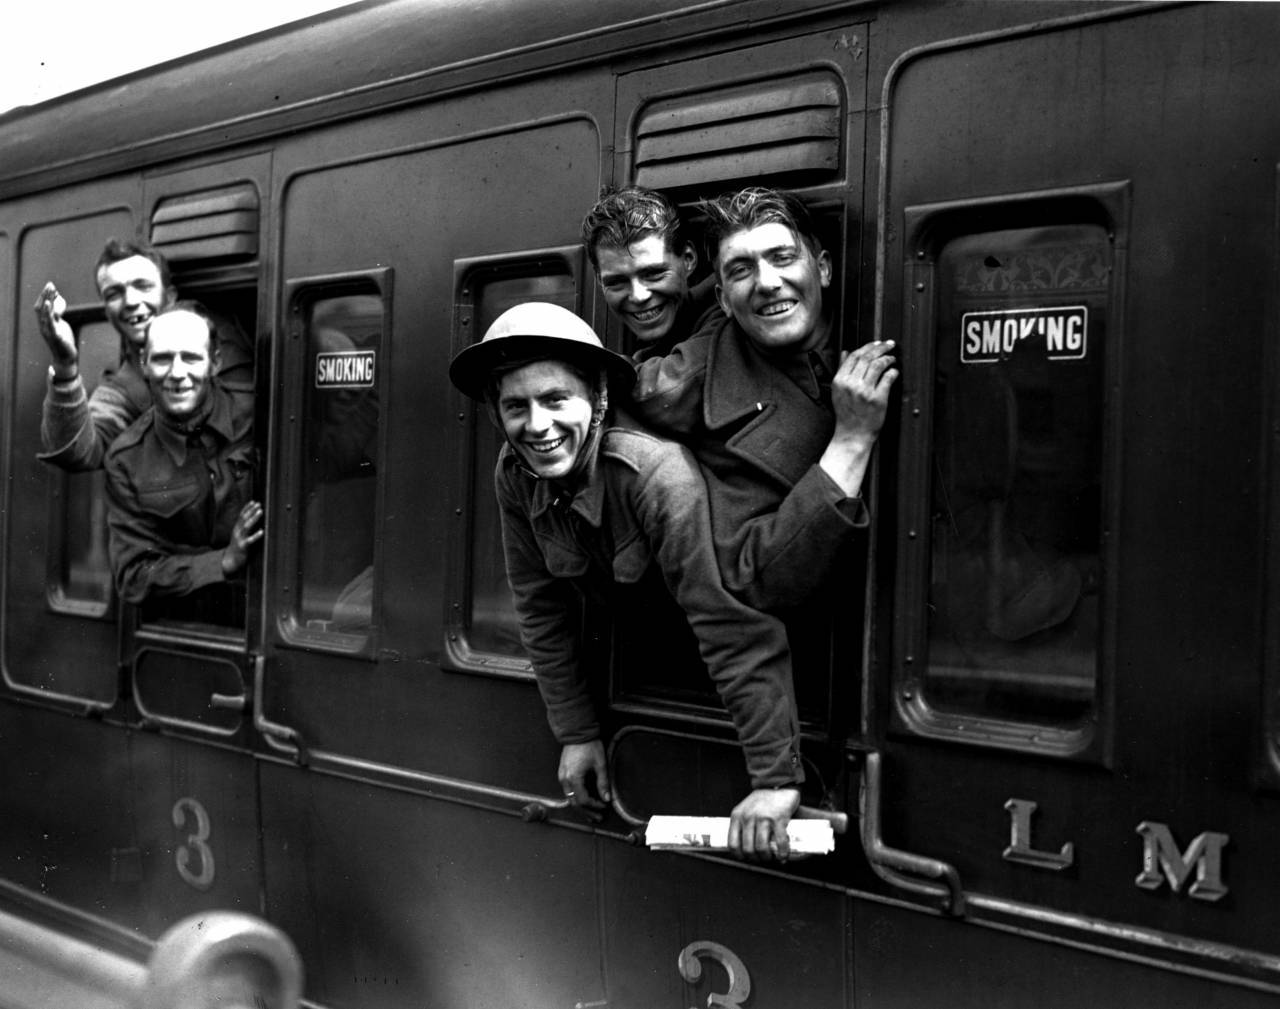 31st May 1940: Members of the British forces arrive home by train after being evacuated from Dunkirk. (Photo by H. F. Davis/Topical Press Agency/Getty Images)